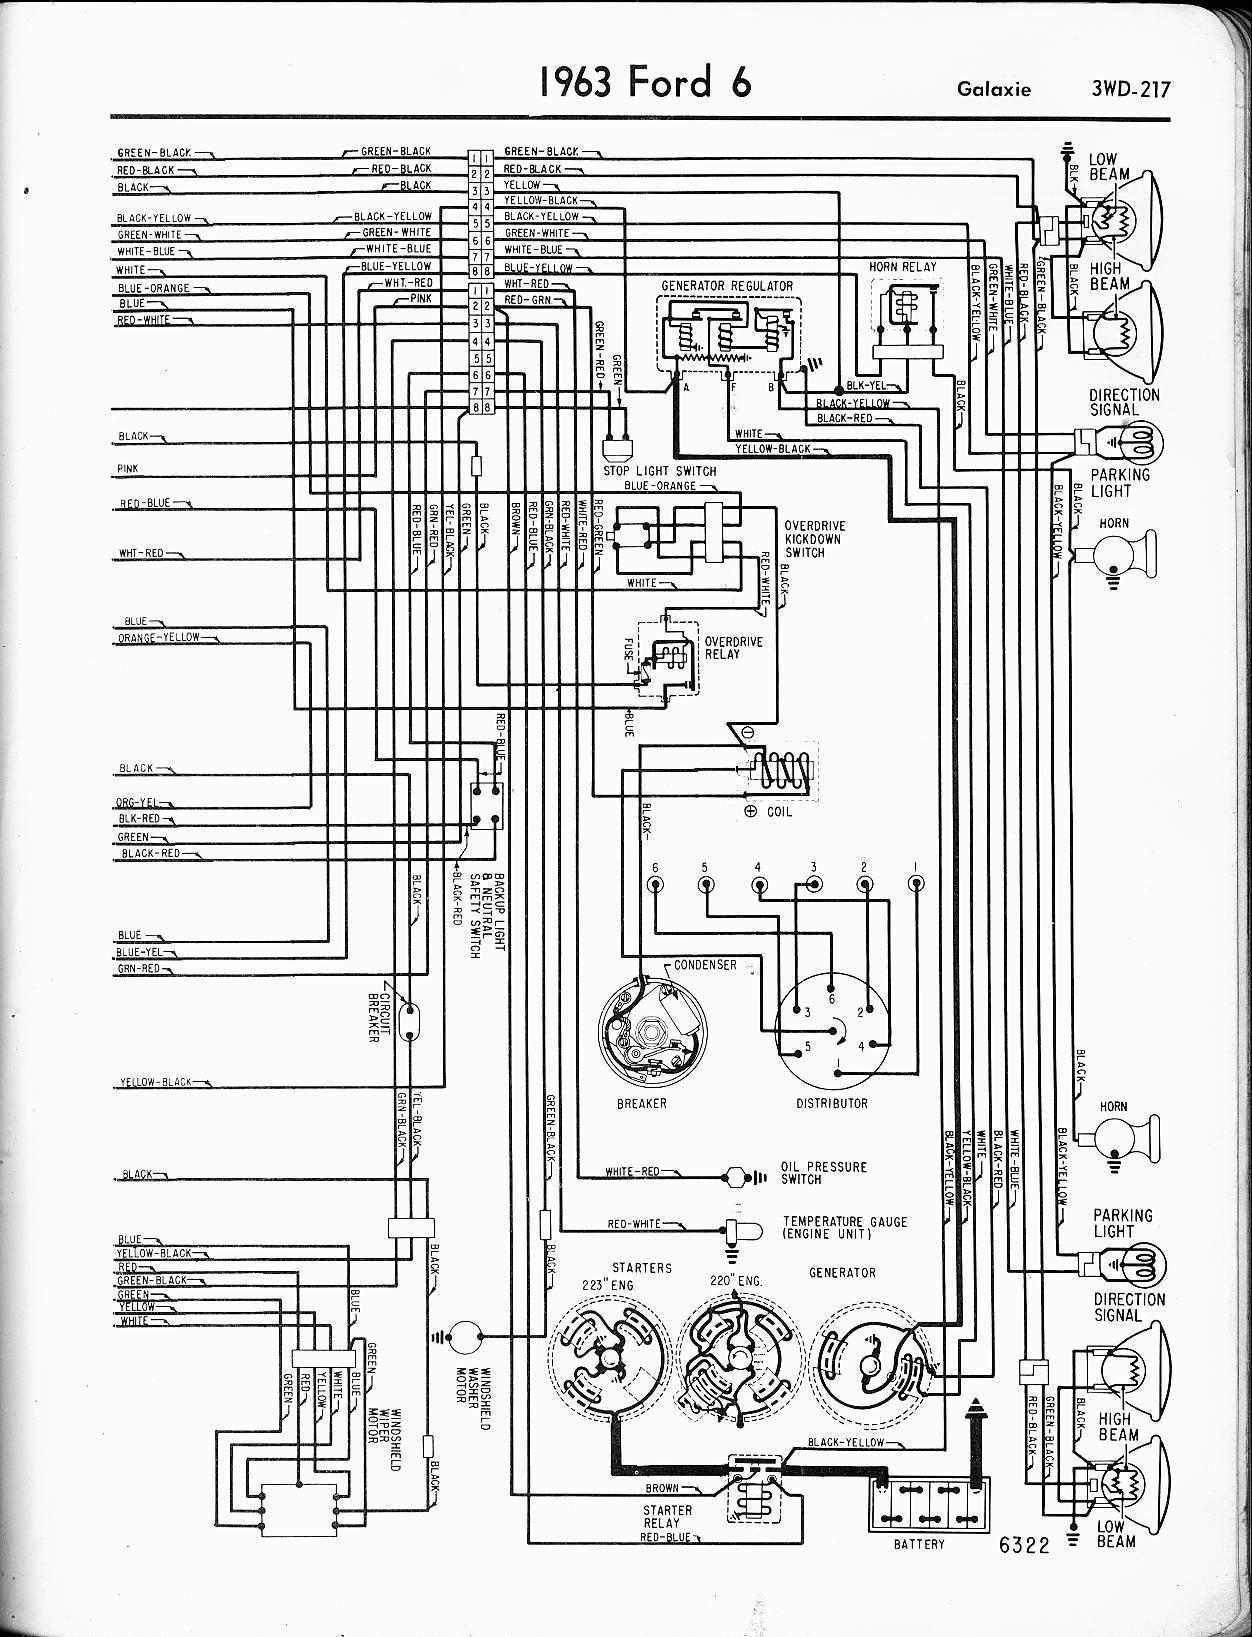 57 65 Ford Wiring Diagrams Dodge Ram Turn Signal Diagram 1963 6 Cyl Galaxie Right